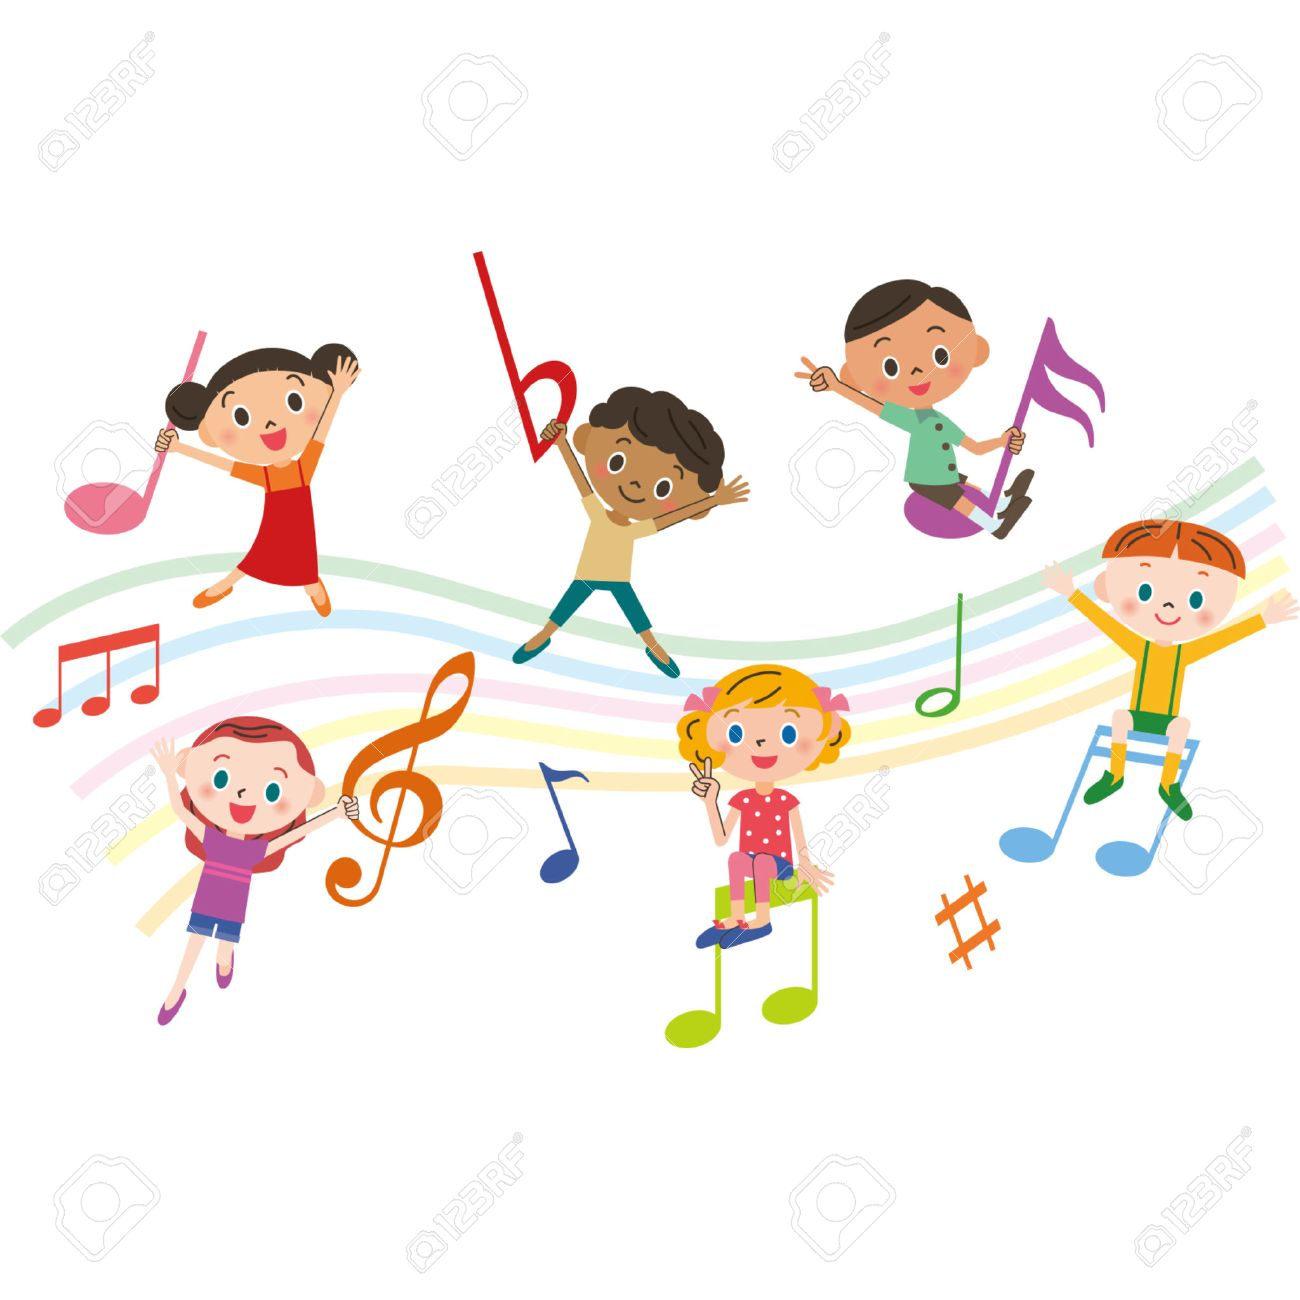 children with music notes.